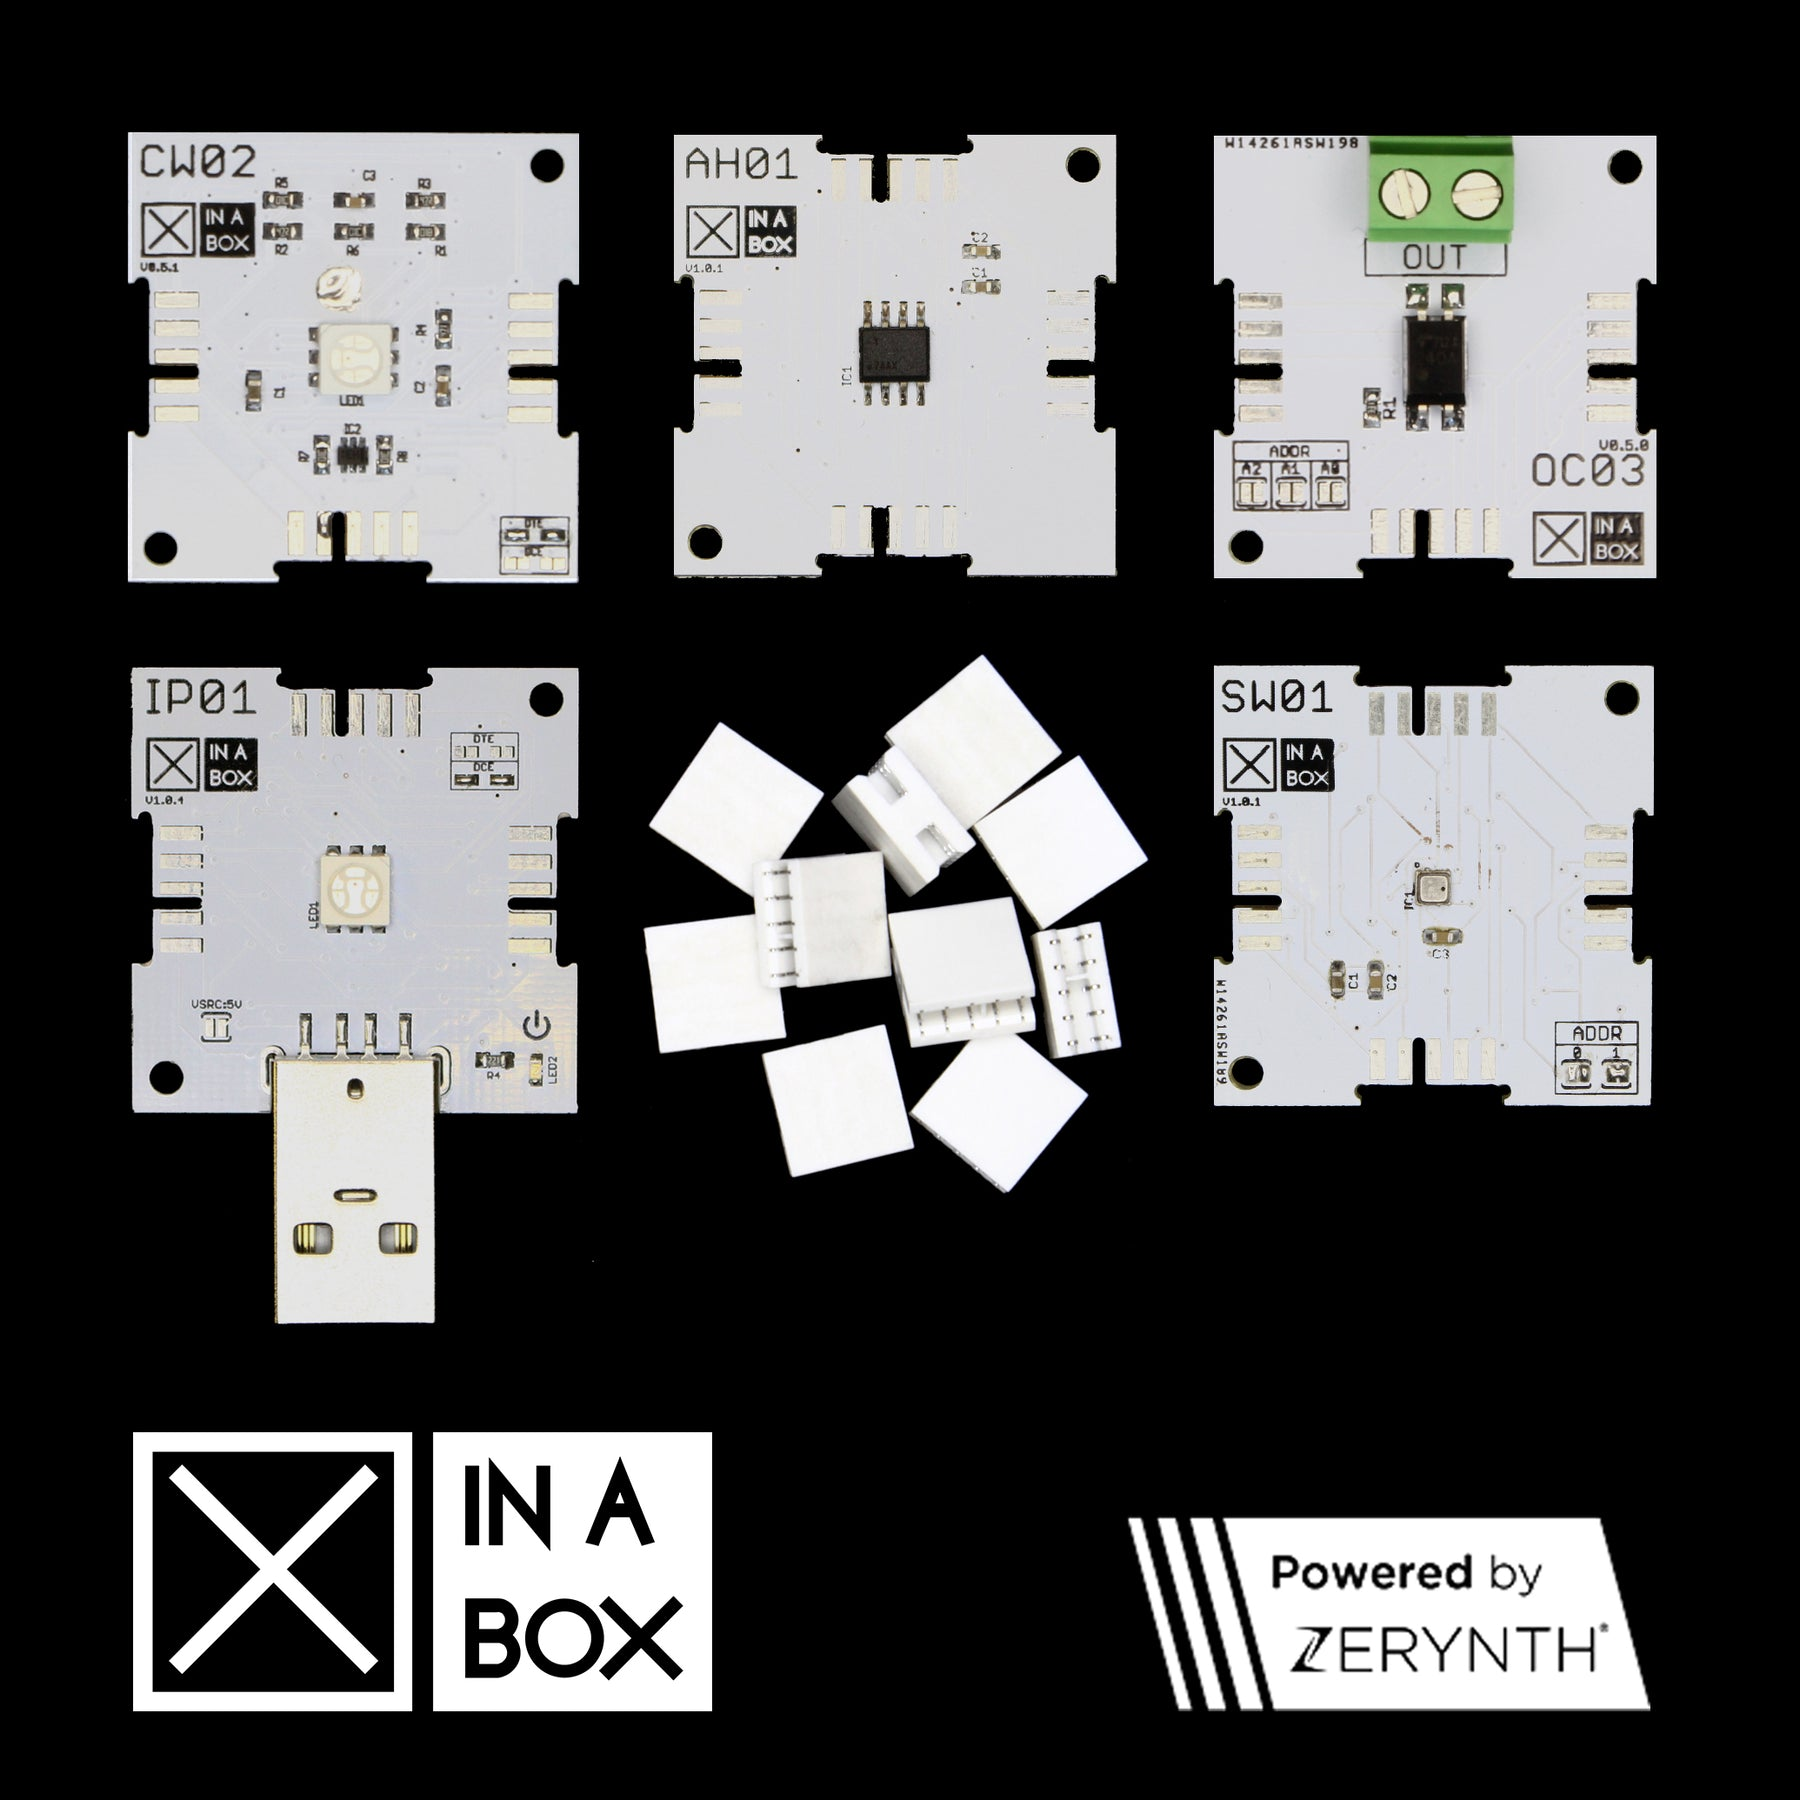 We are excited to launch the XinaBox IoT Starter Kit, powered by Zerynth